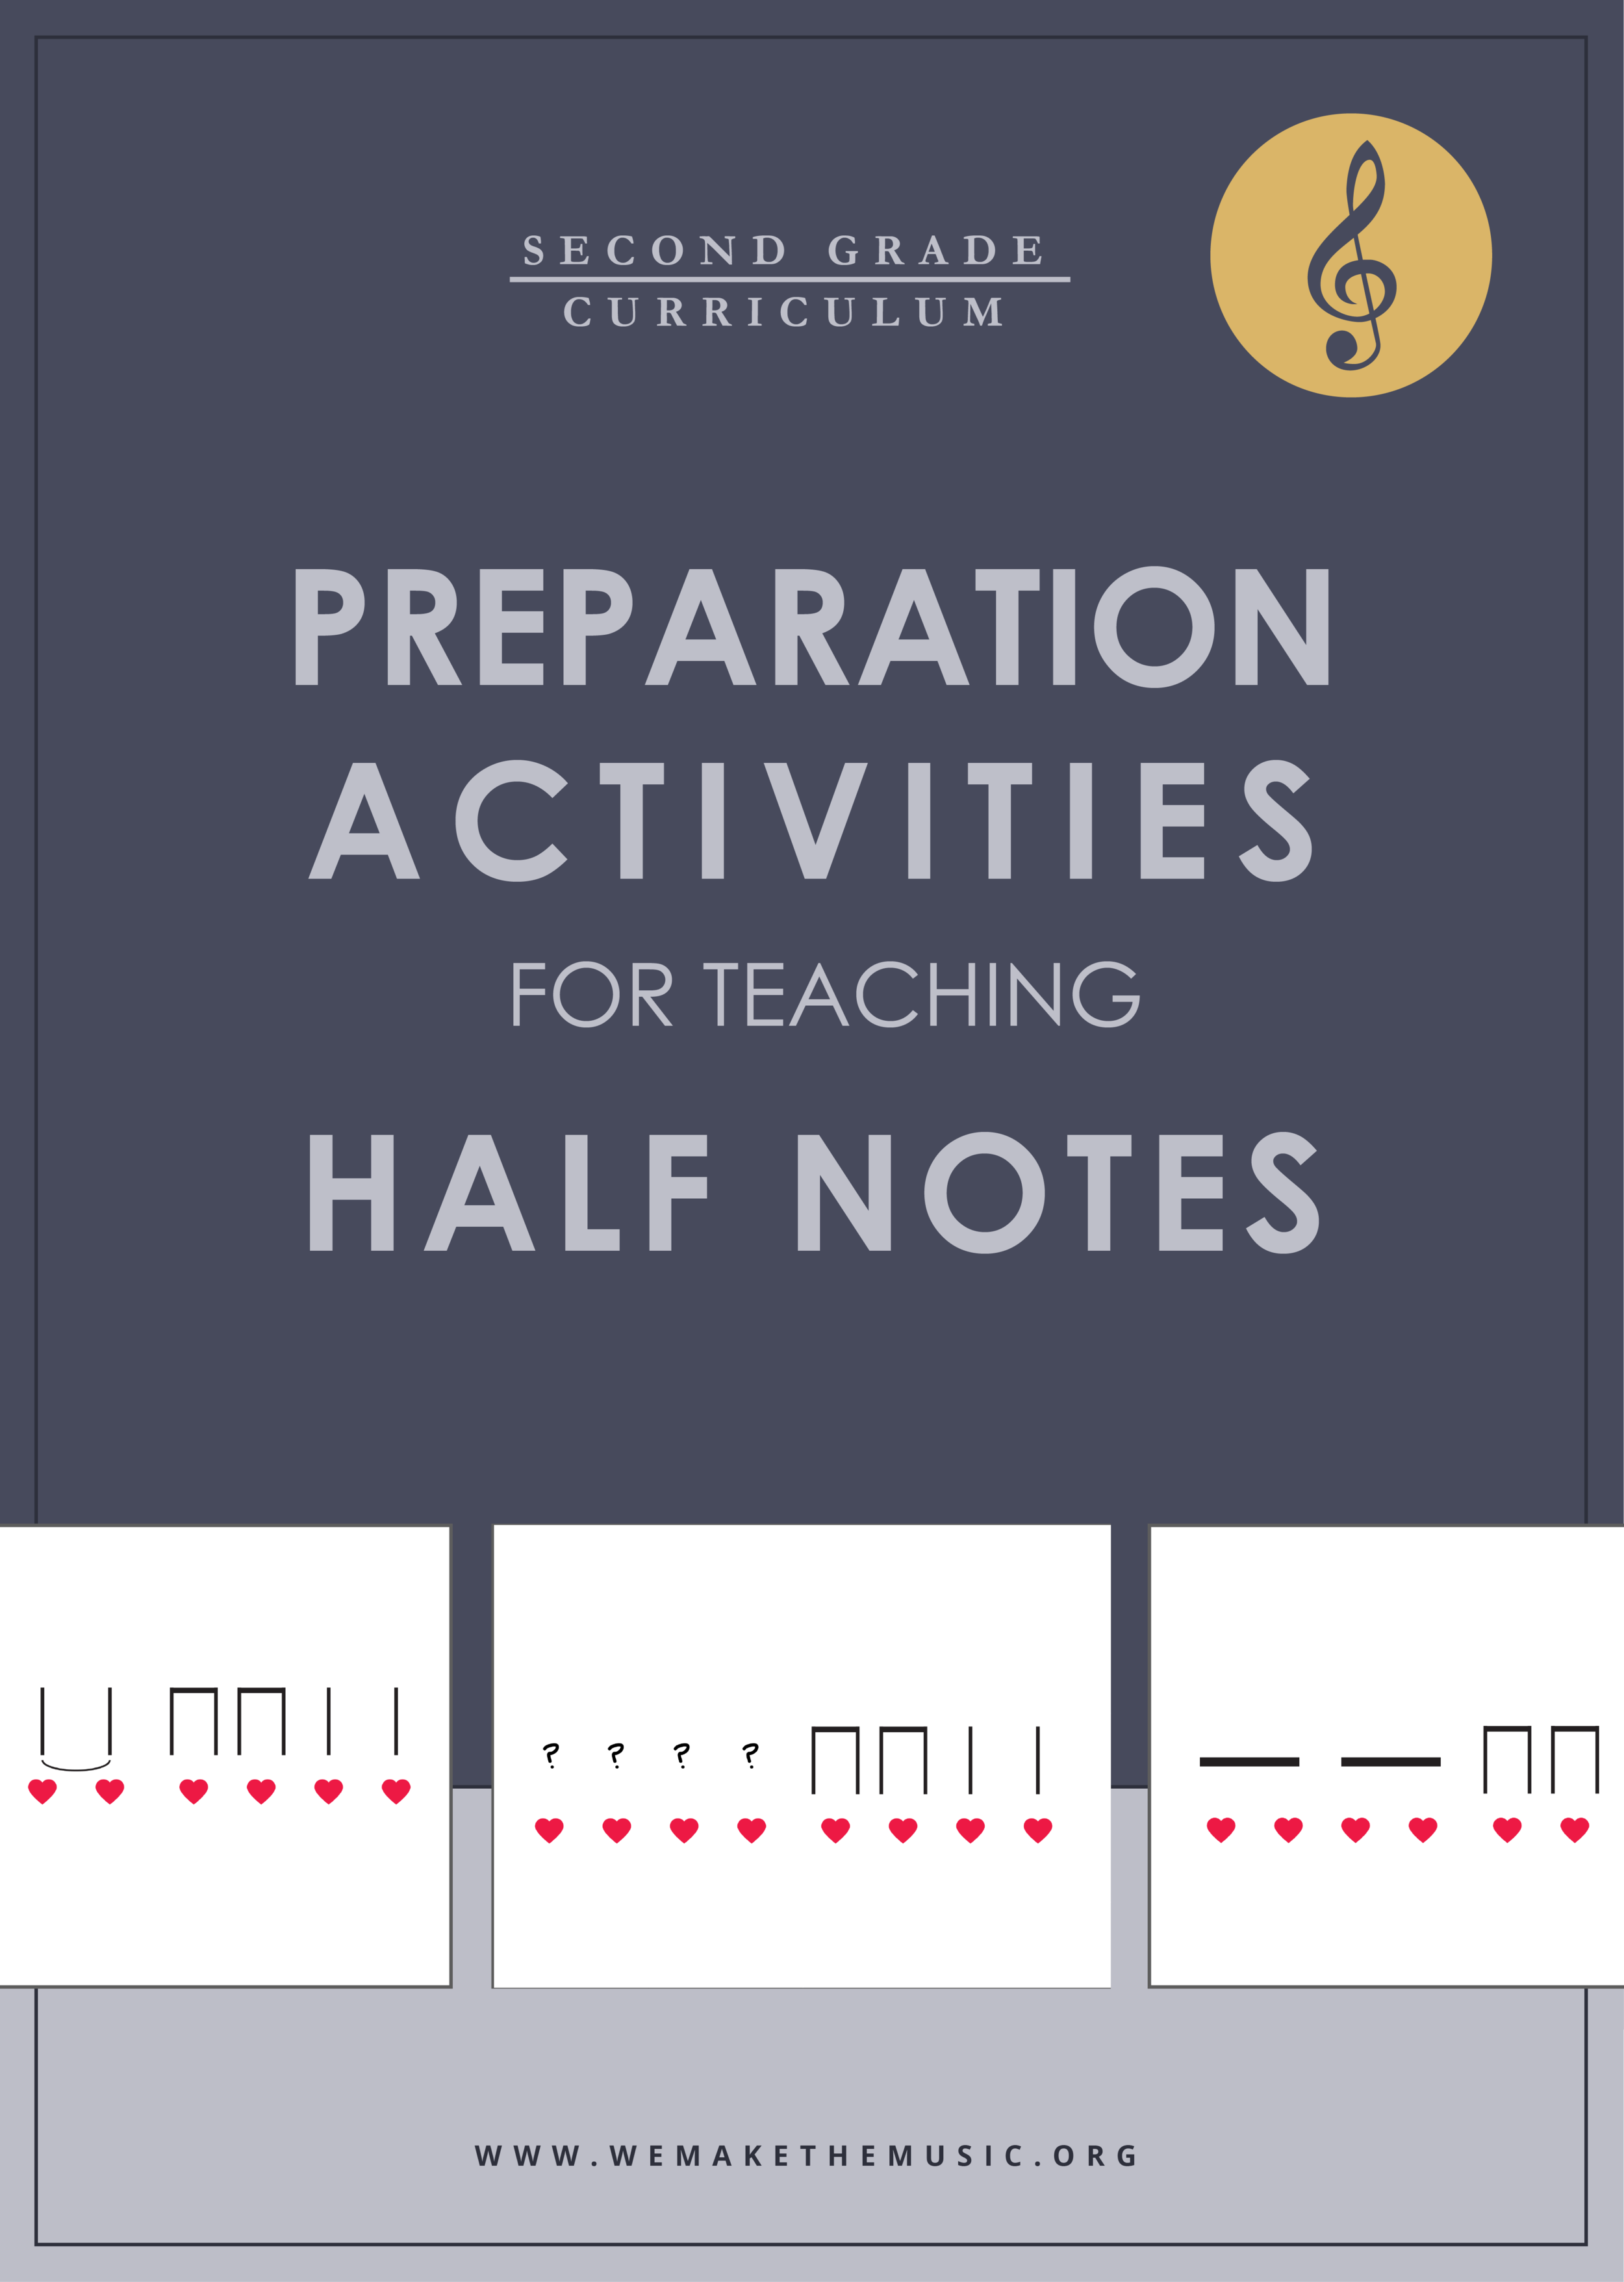 Preparation Activities for Teaching Half Notes_5-8 Prepare half notes.png